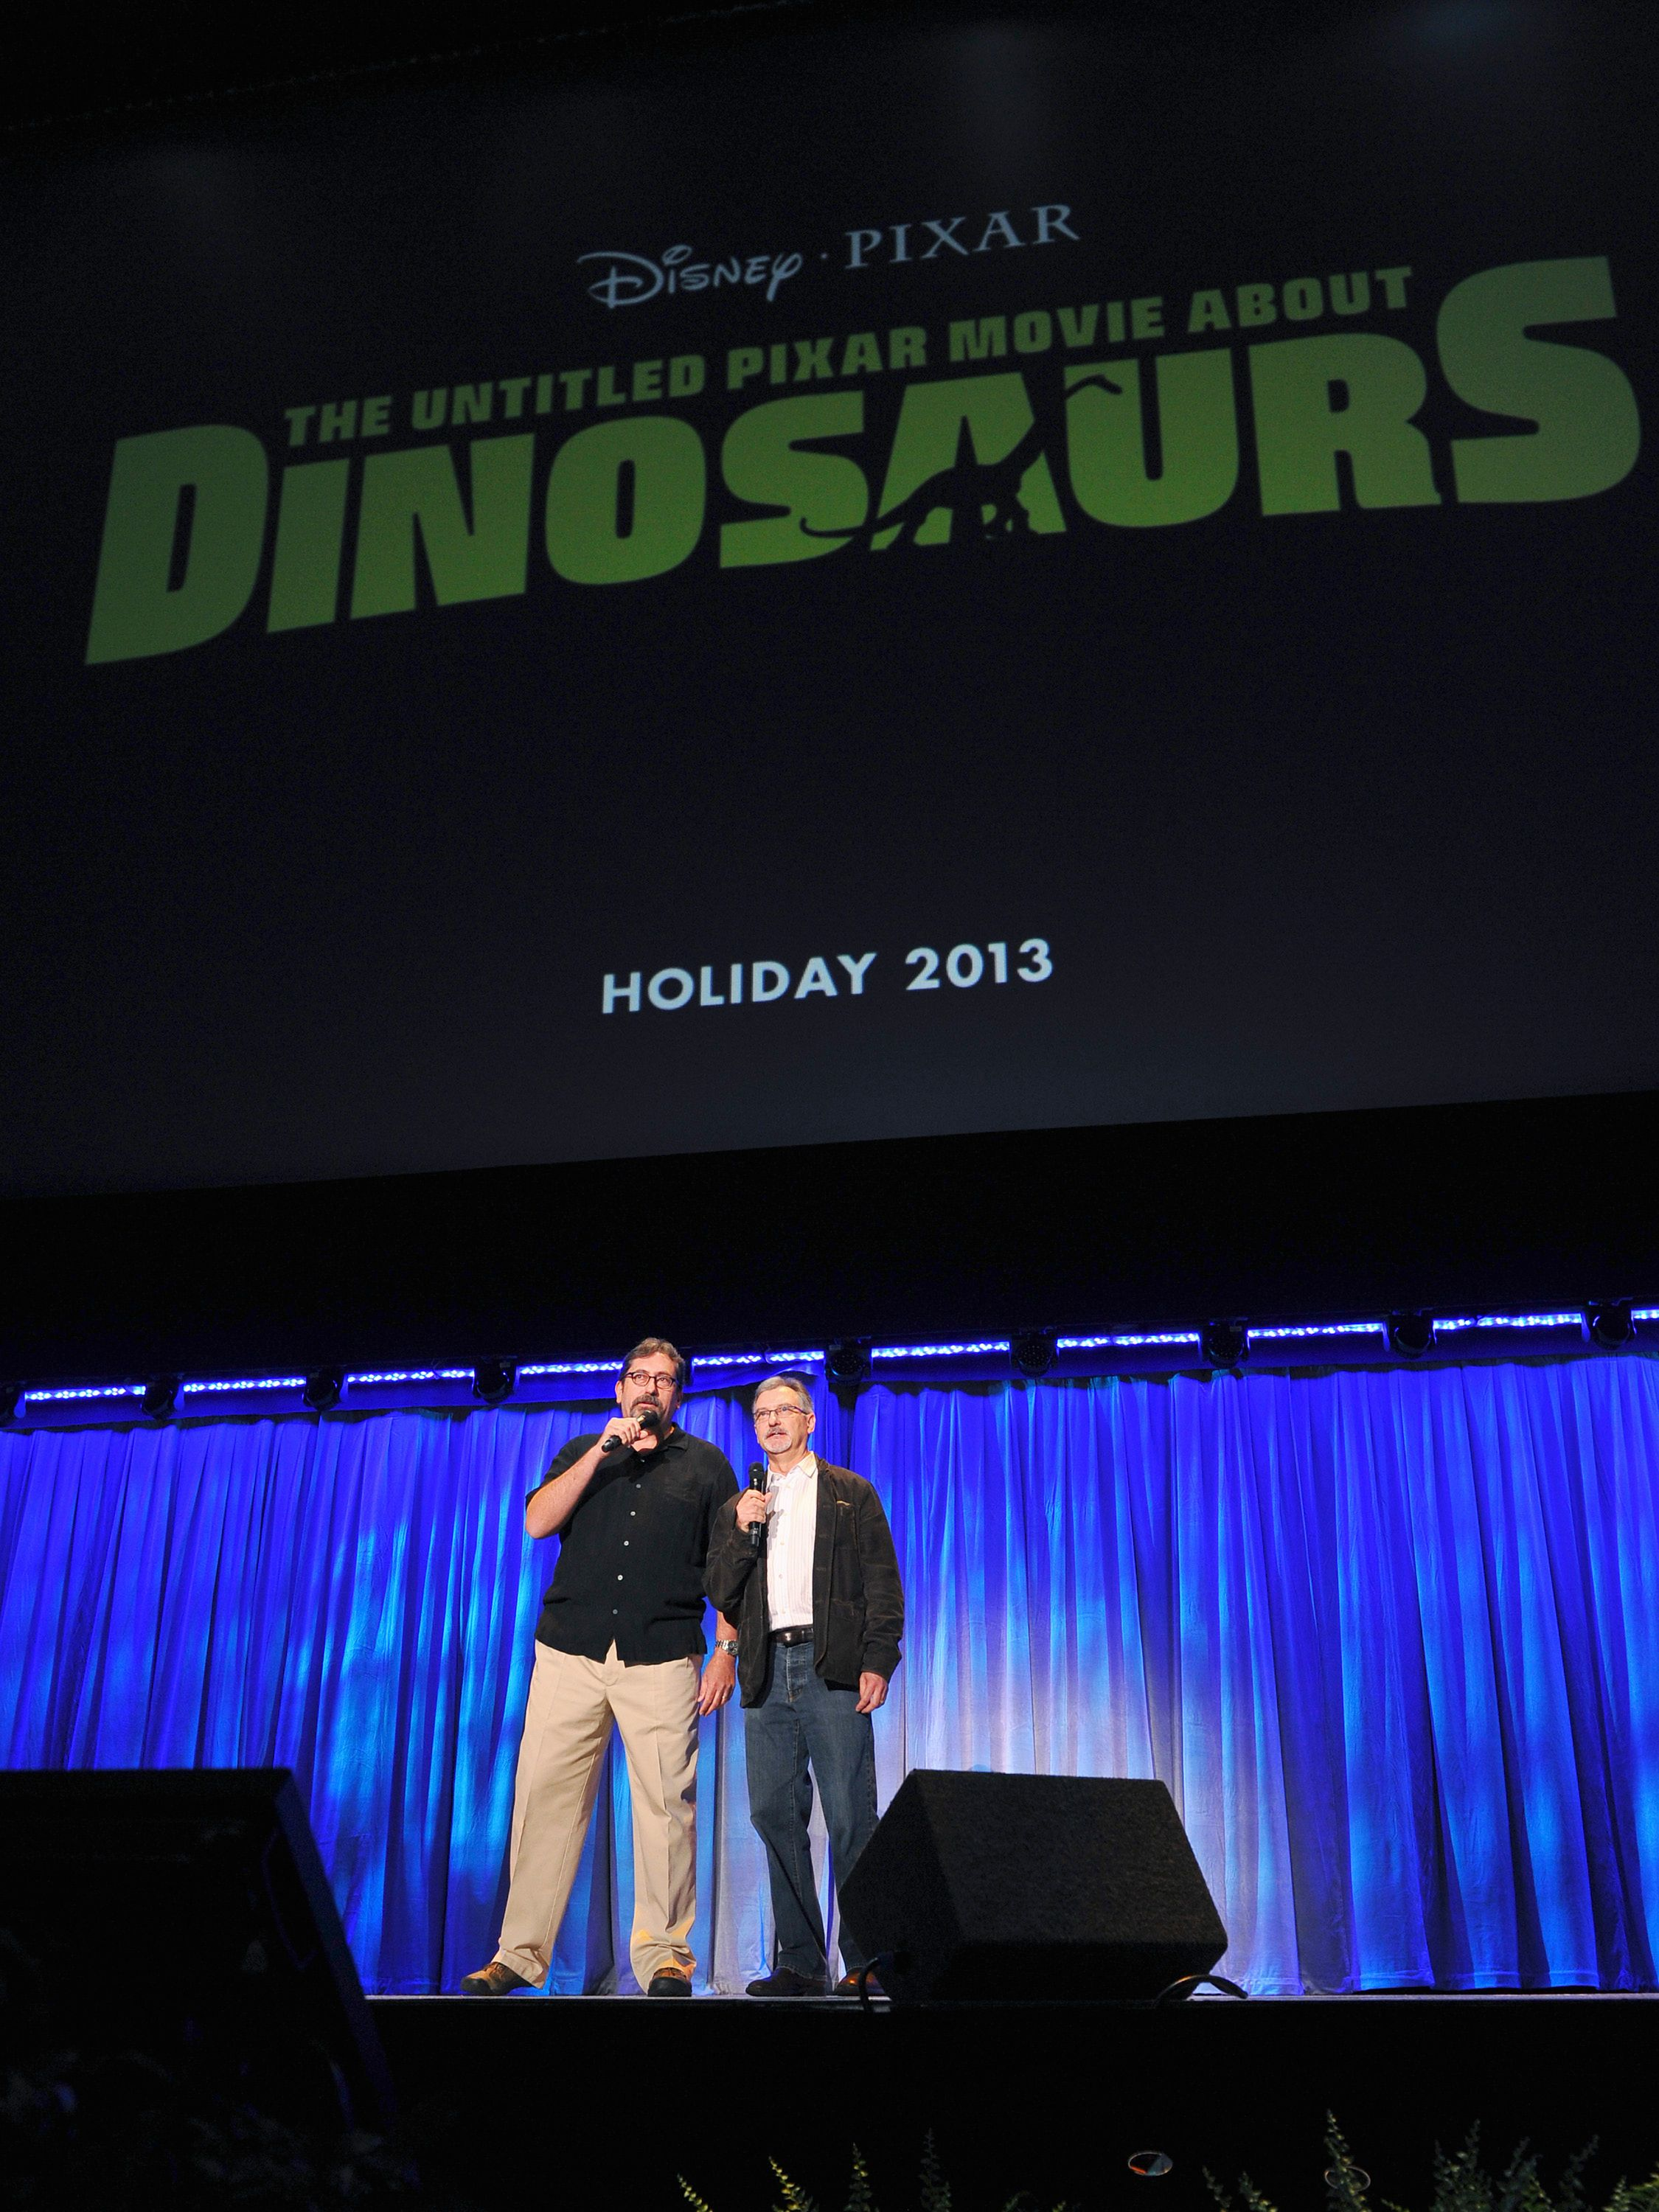 Disney Confirms The Avengers Will Be 3d Pixars Dinosaur Movie Now Electronics Projects April 2013 Related Content